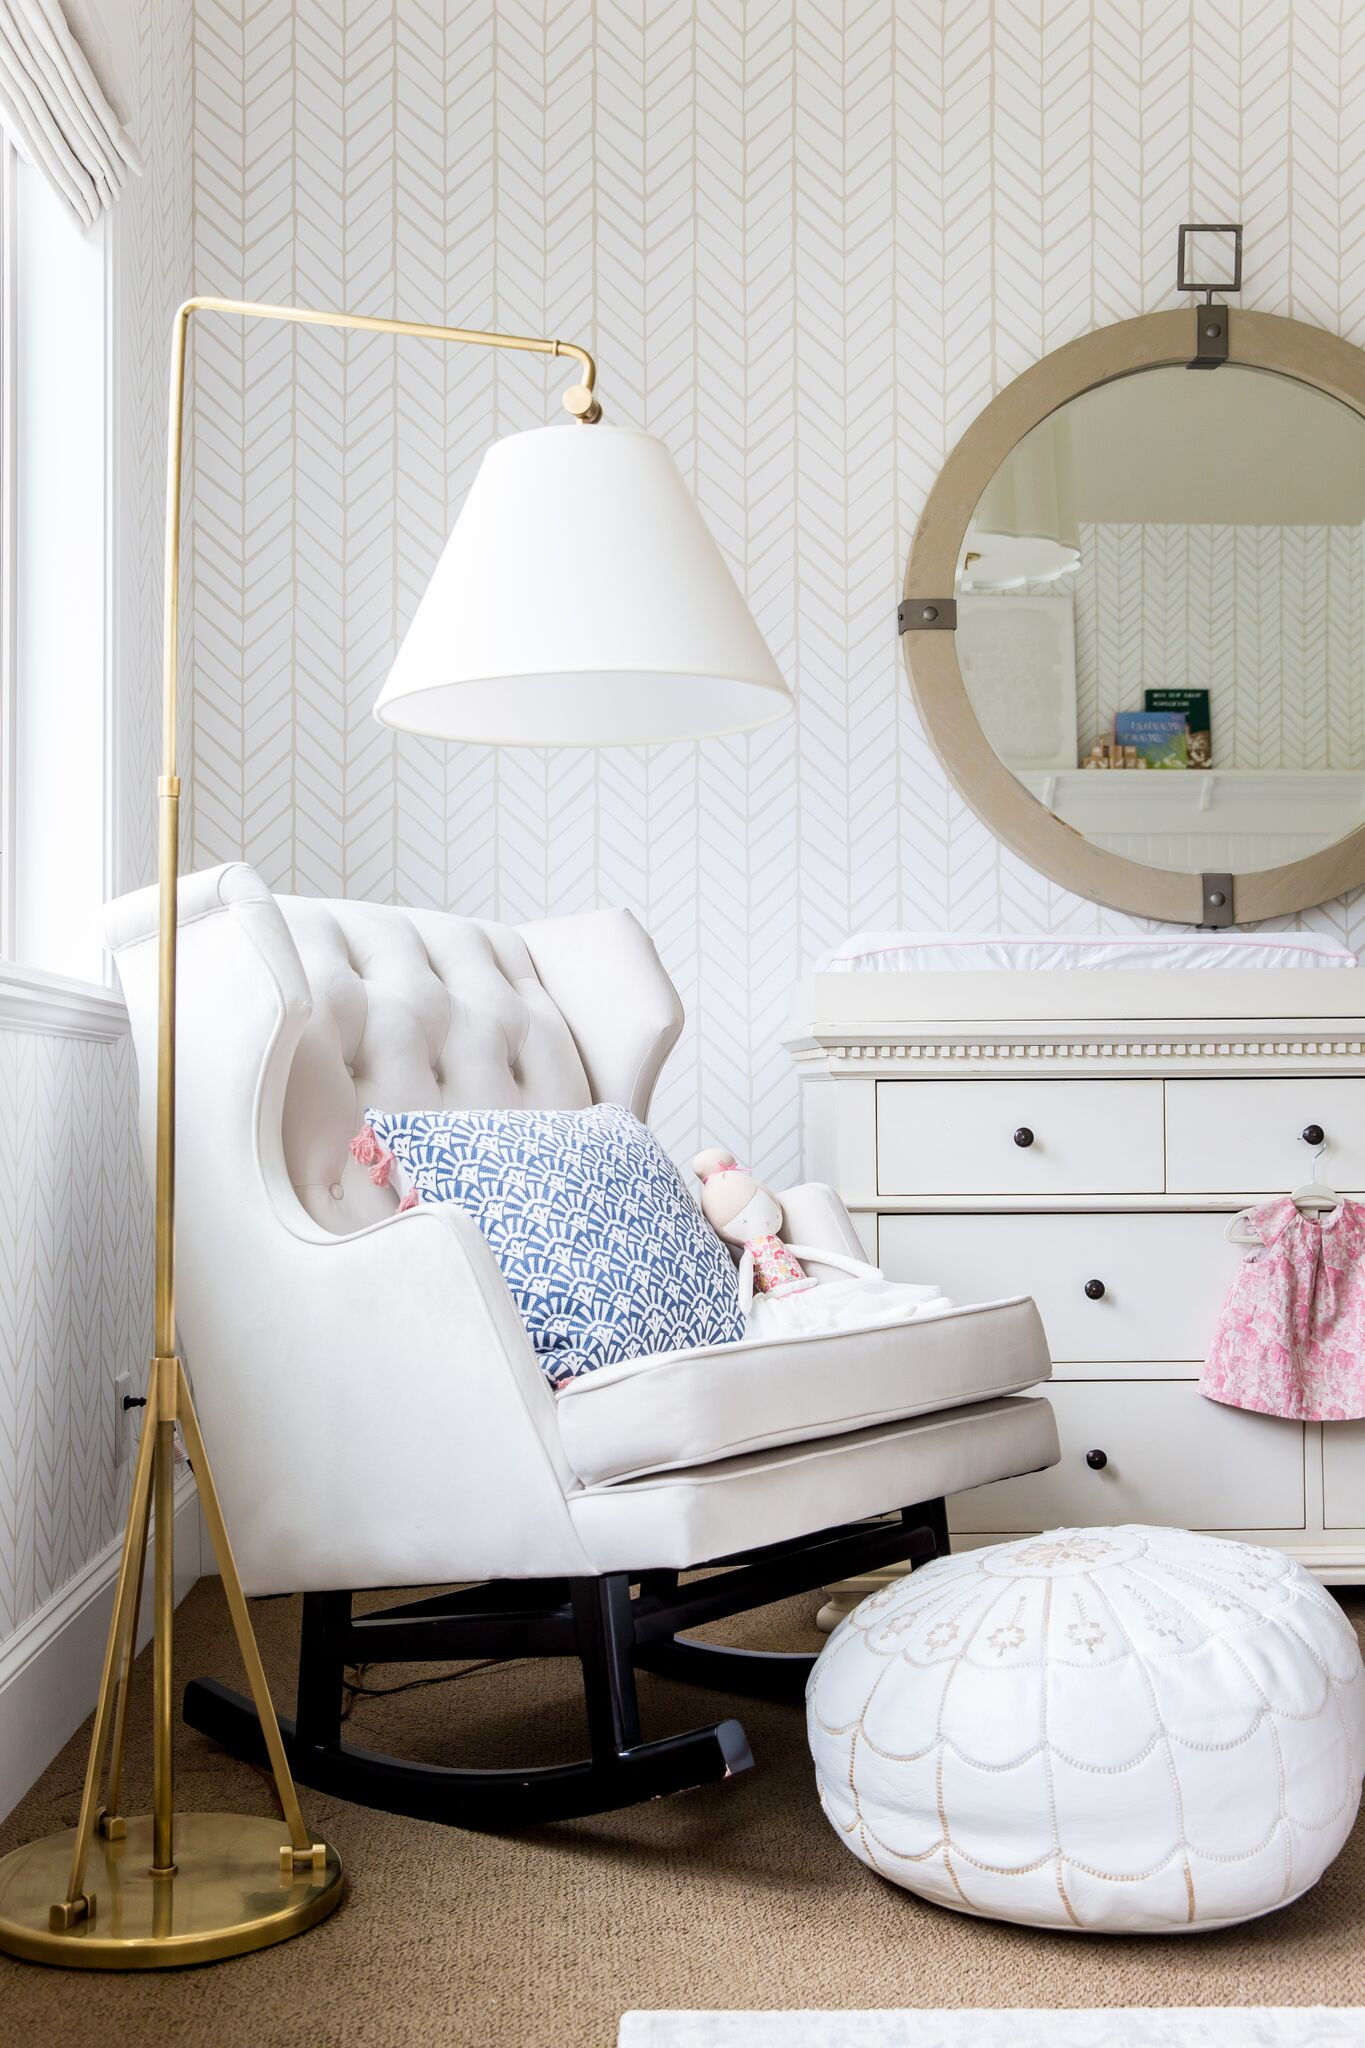 Soft seating tips for decorating kid spaces